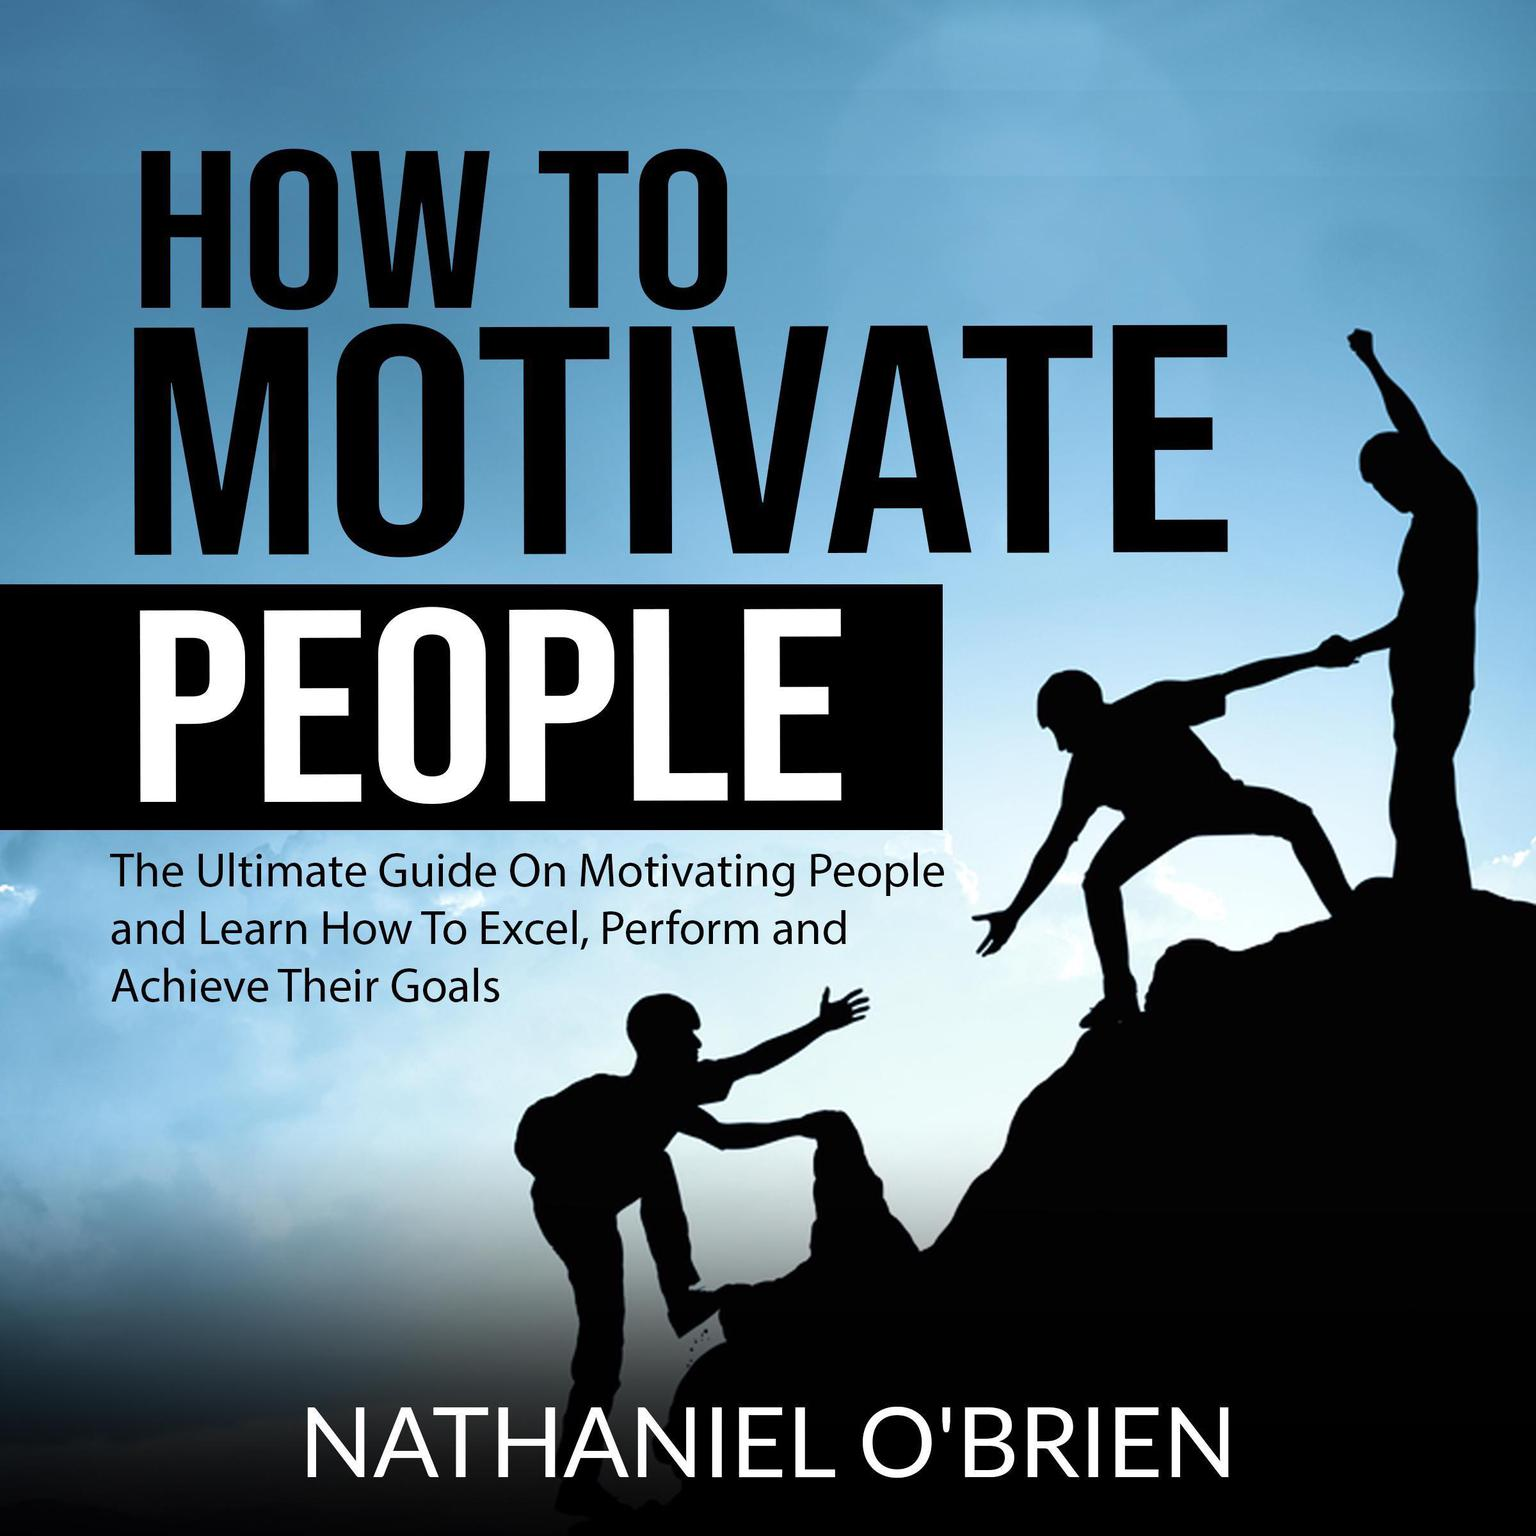 How to Motivate People: The Ultimate Guide On Motivating People and Learn How To Excel, Perform and Achieve Their Goals Audiobook, by Nathaniel O'Brien